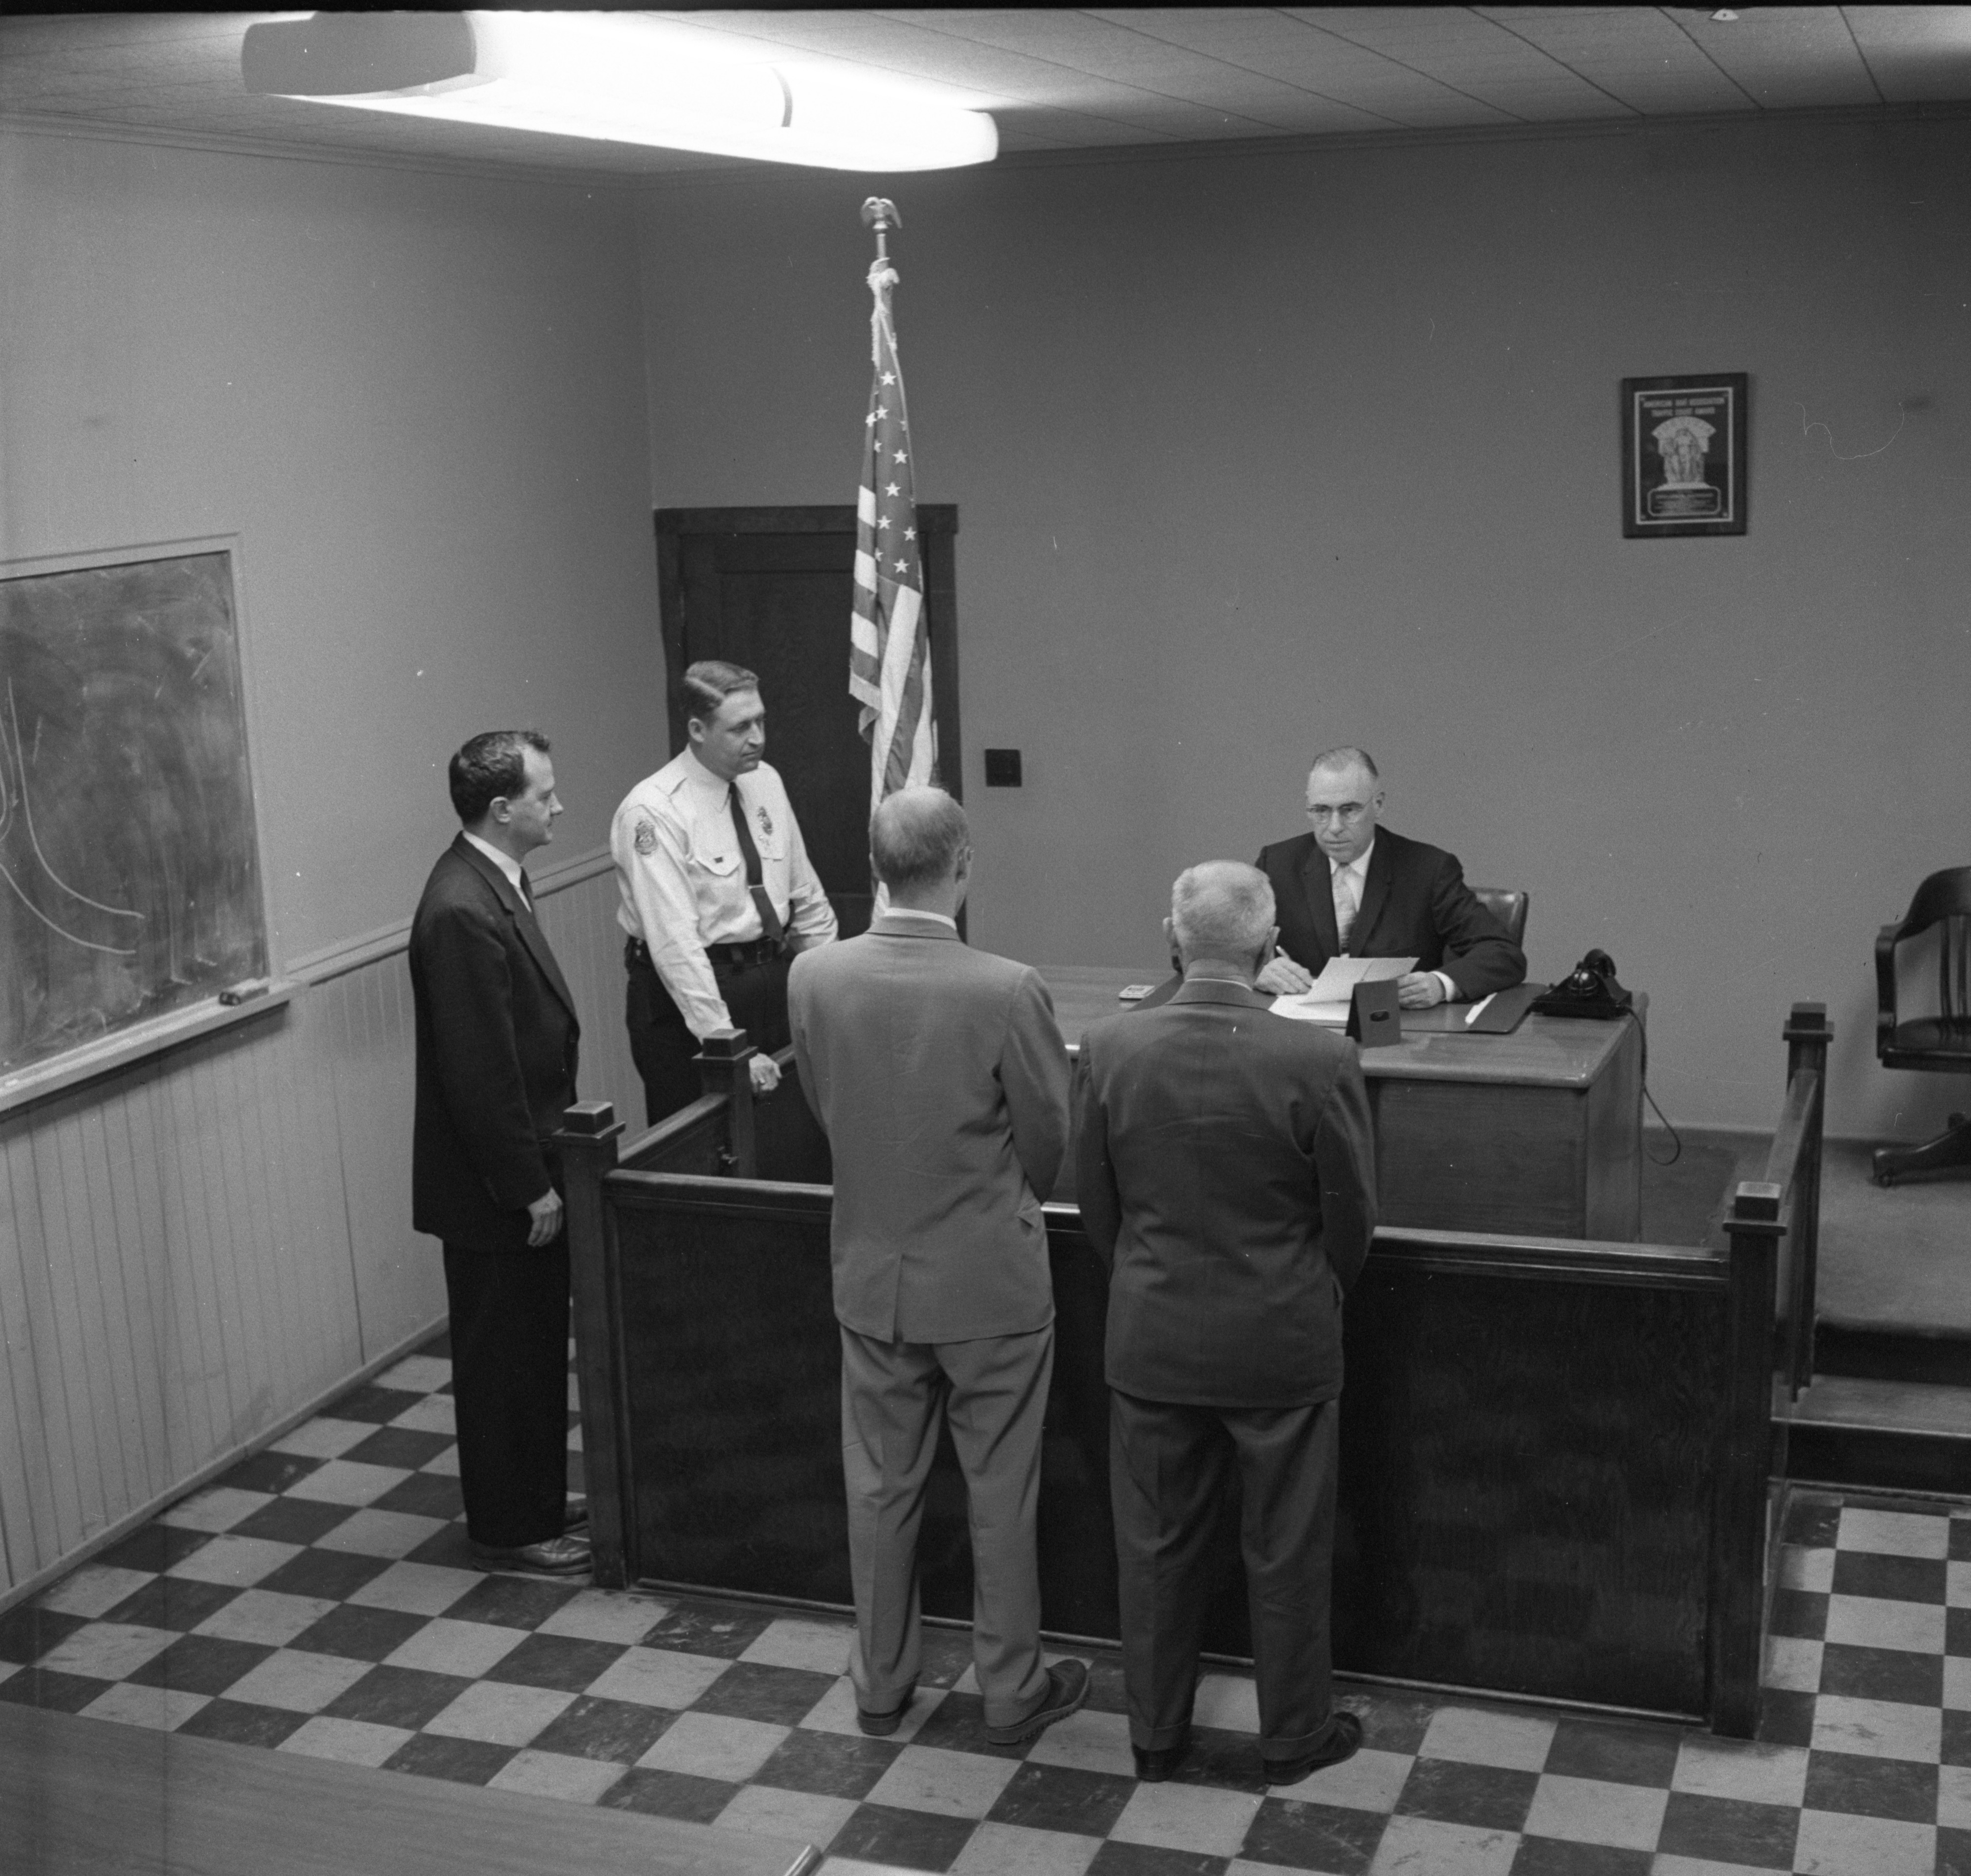 Municipal Court Judge Francis L. O'Brien Hears Evidence In A Case - May 1958 image